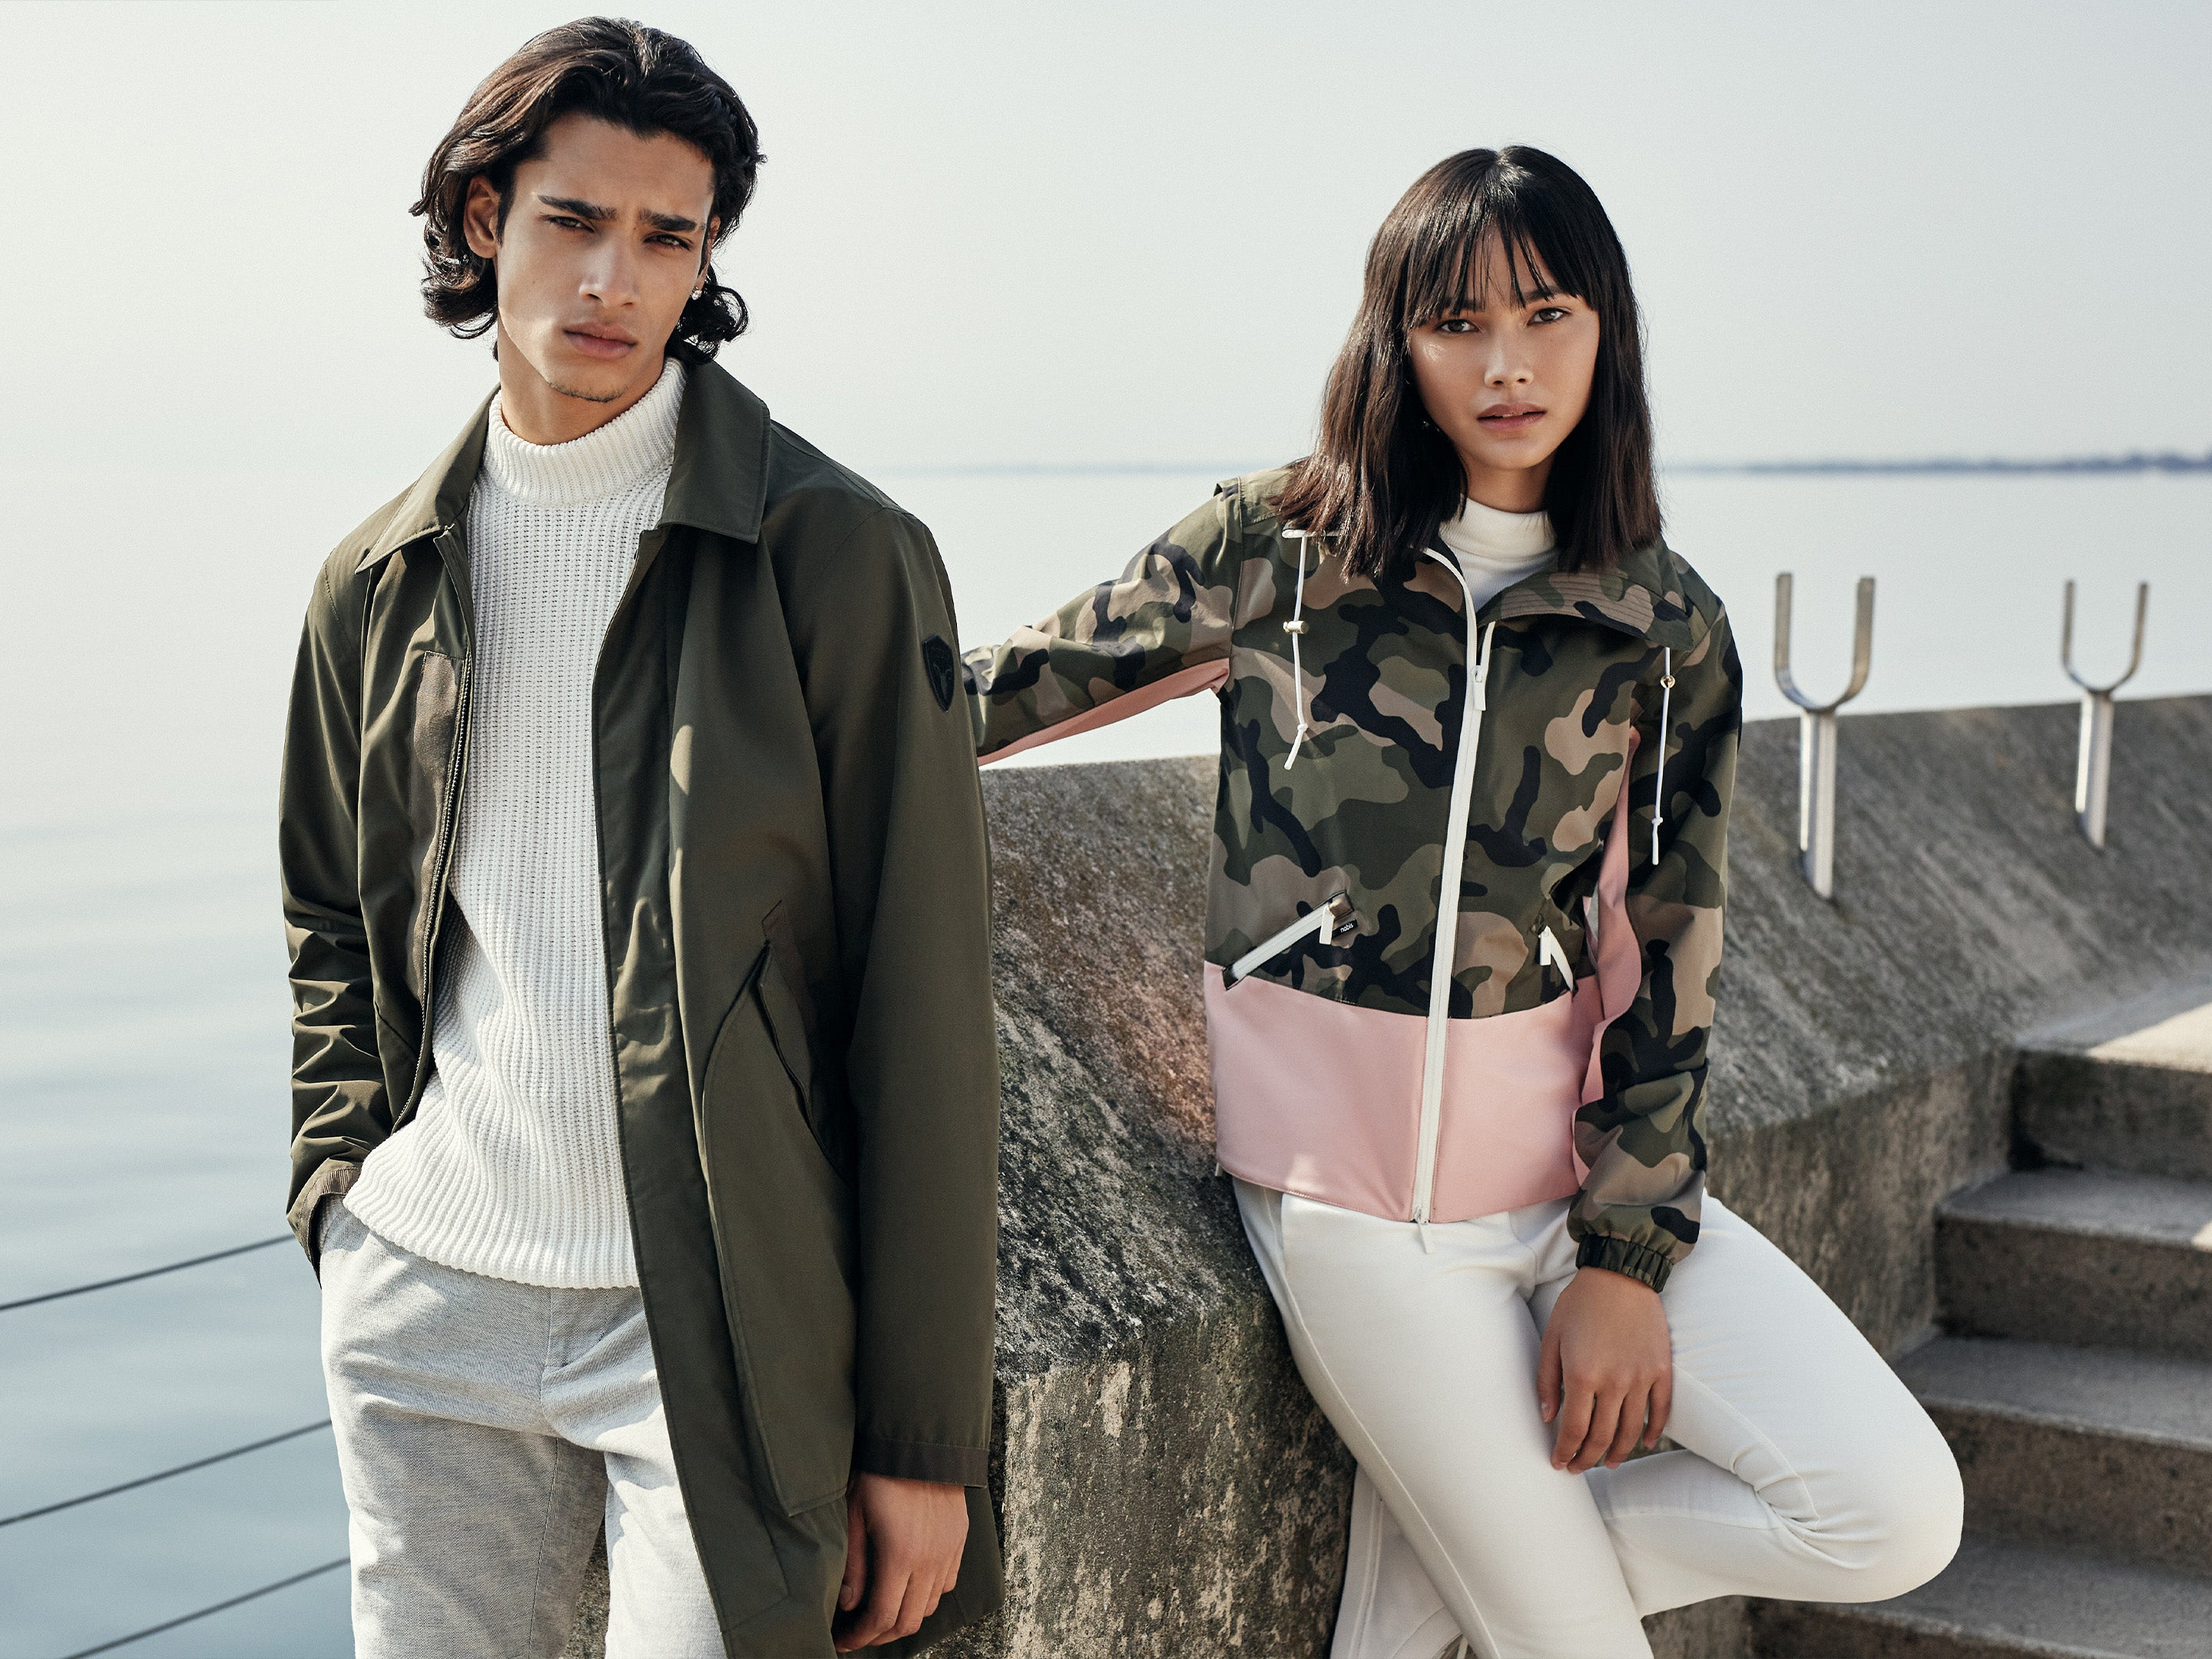 Man stands and woman leans on the edge of a pier. Man wears Yardley men's raincoat in Fatigue colour, woman wears Leah ladies tech jacket in Camo colour.